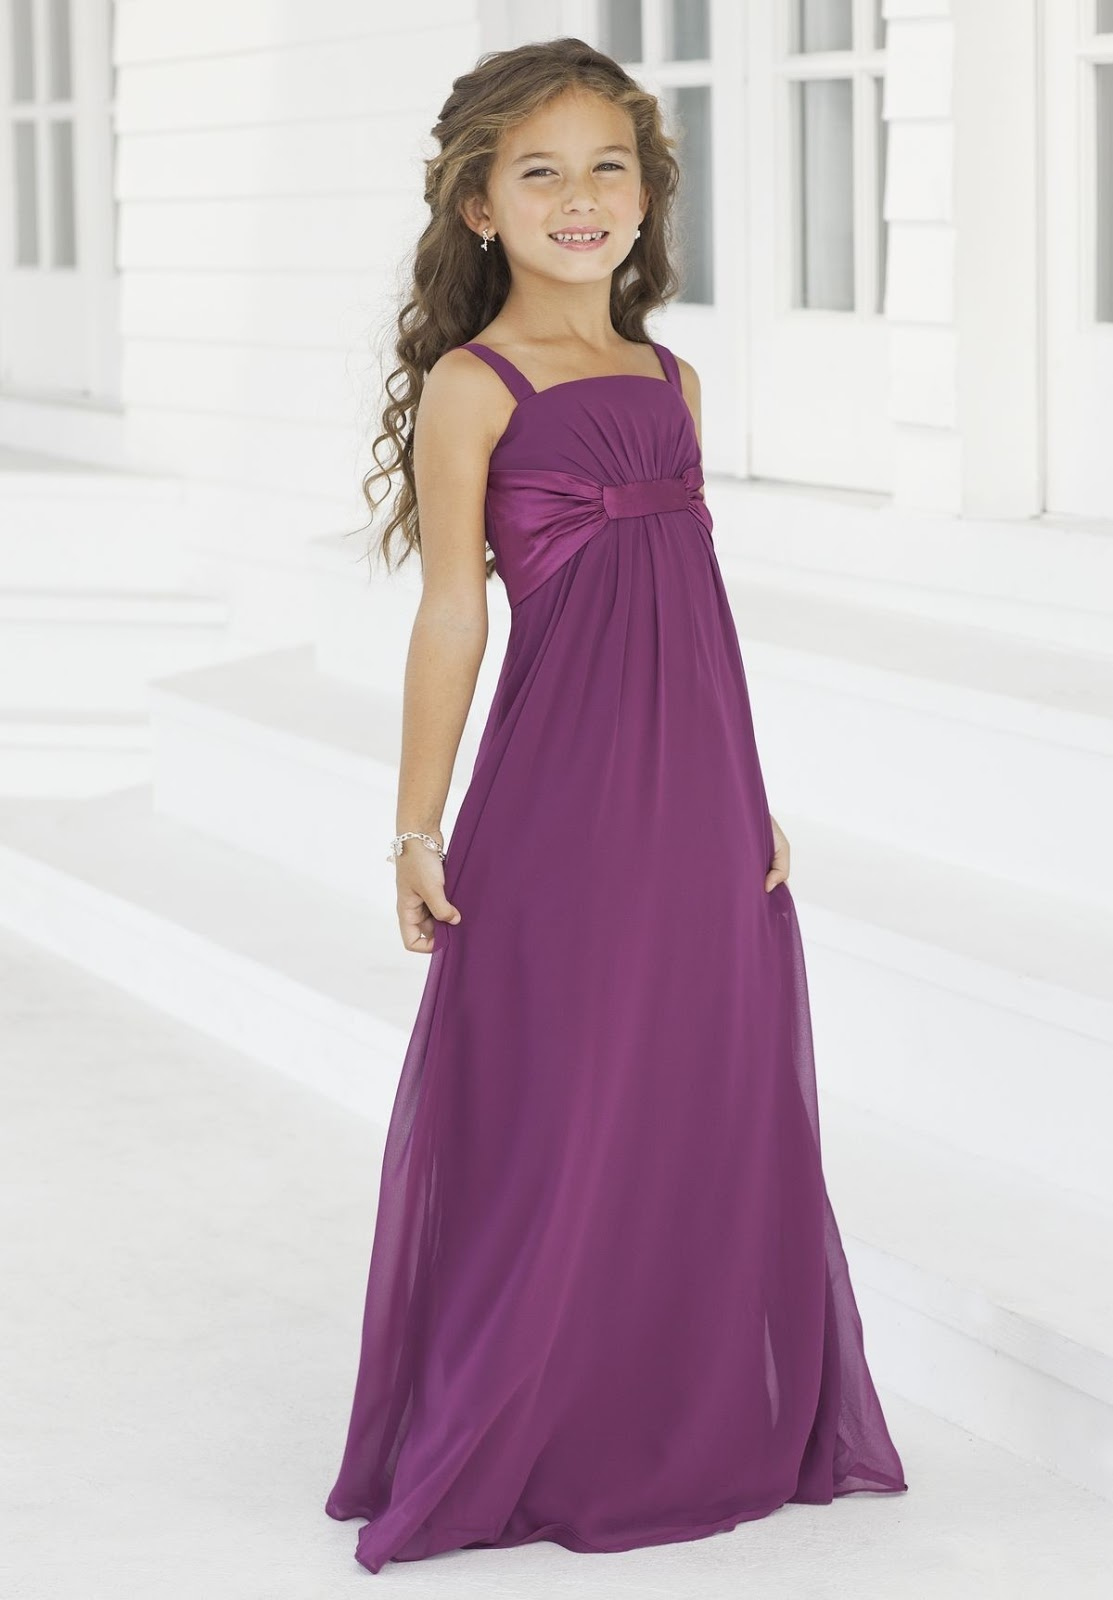 Flower girl dresses junior bridesmaid wedding dresses in redlands flower girl dresses junior bridesmaid 50 izmirmasajfo